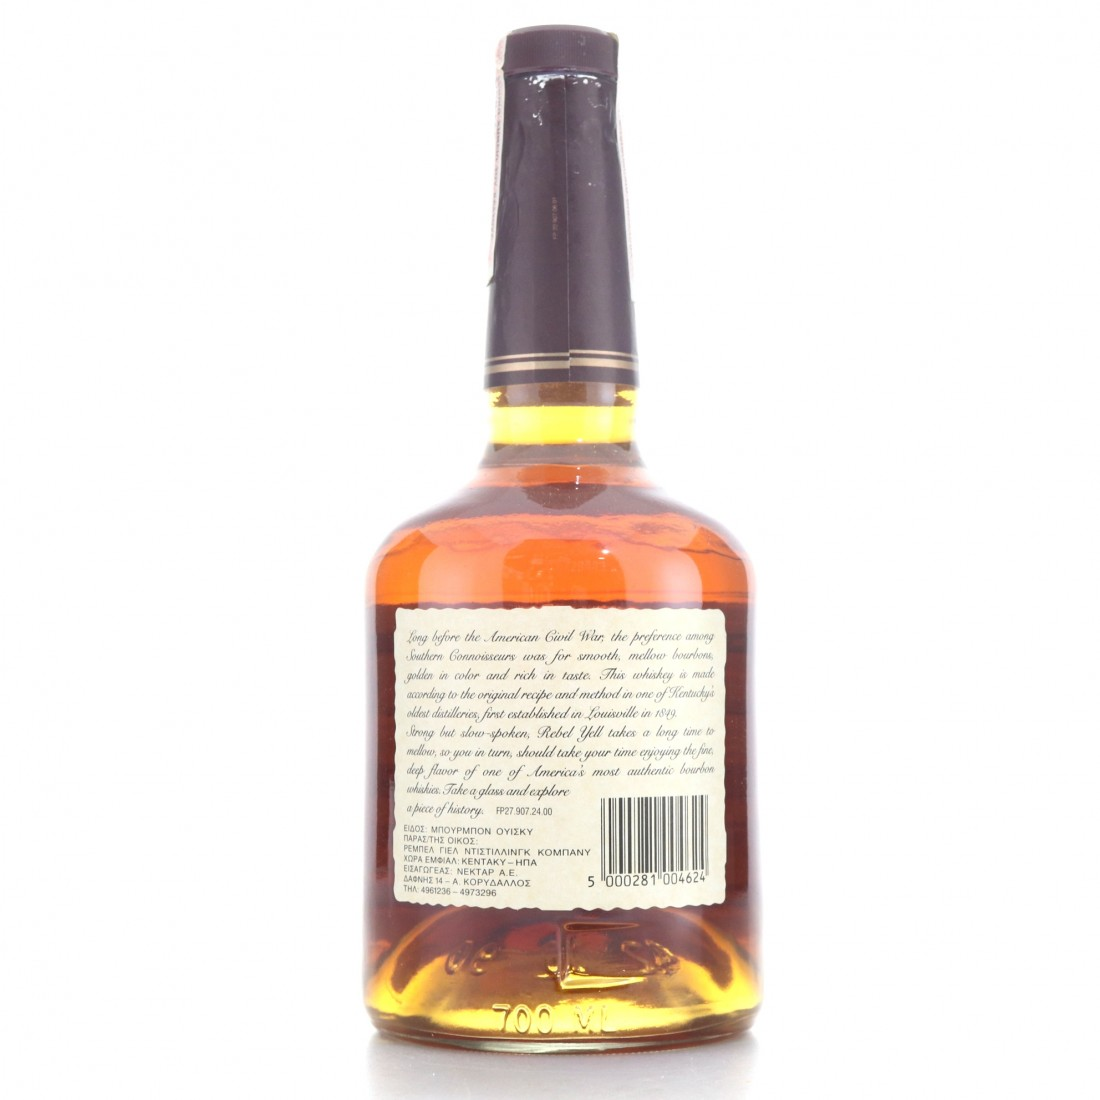 Rebel Yell Kentucky Straight Bourbon 1990s / Stitzel-Weller